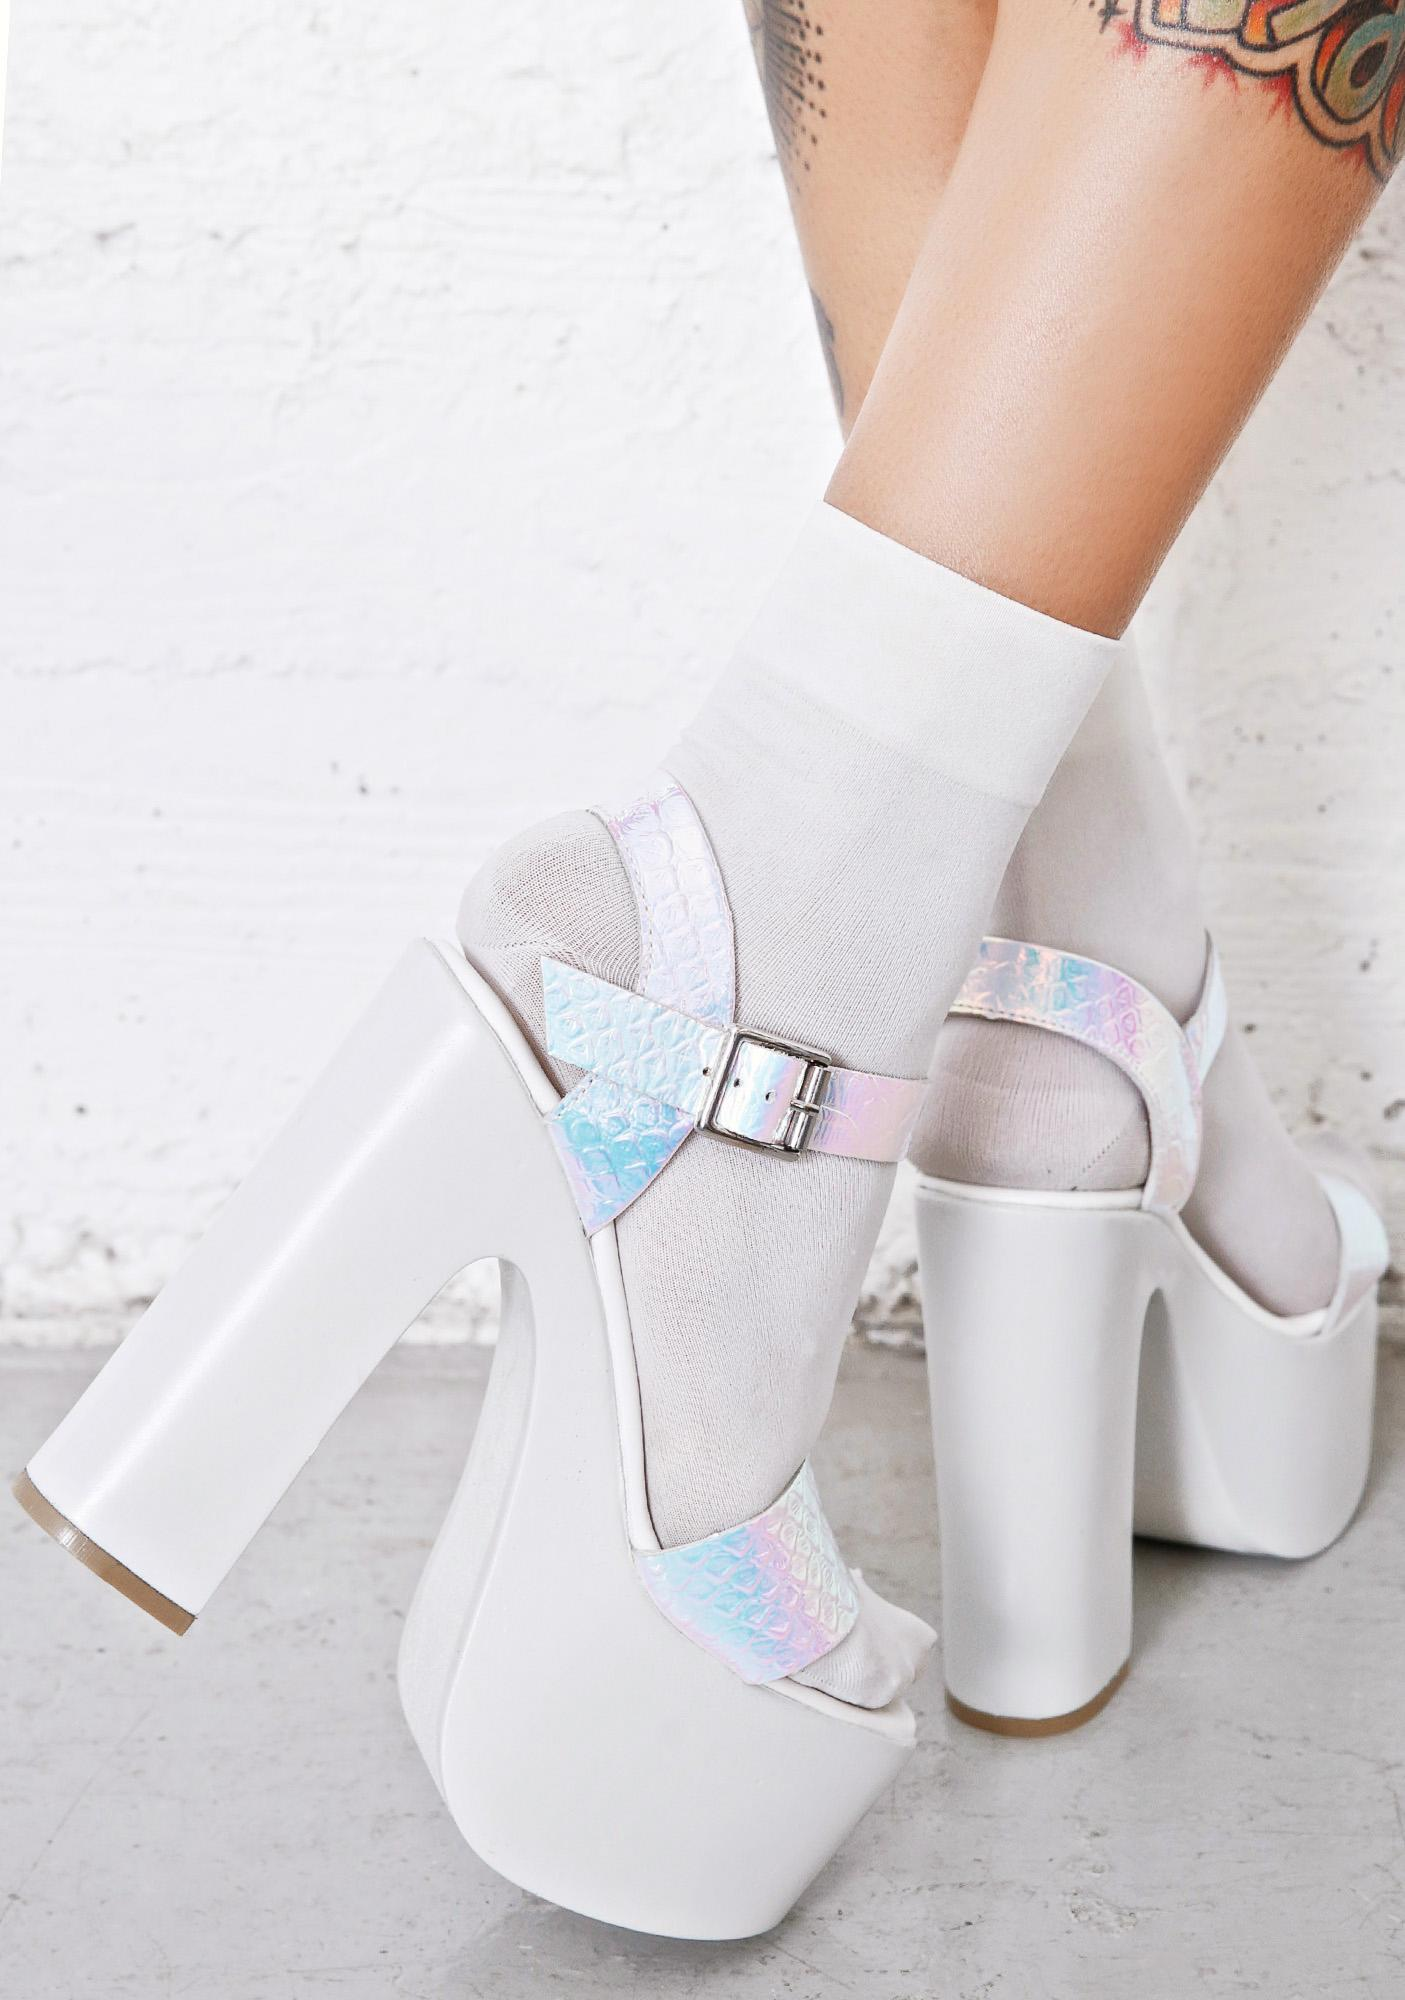 ROC Boots Haiku Holographic Platforms